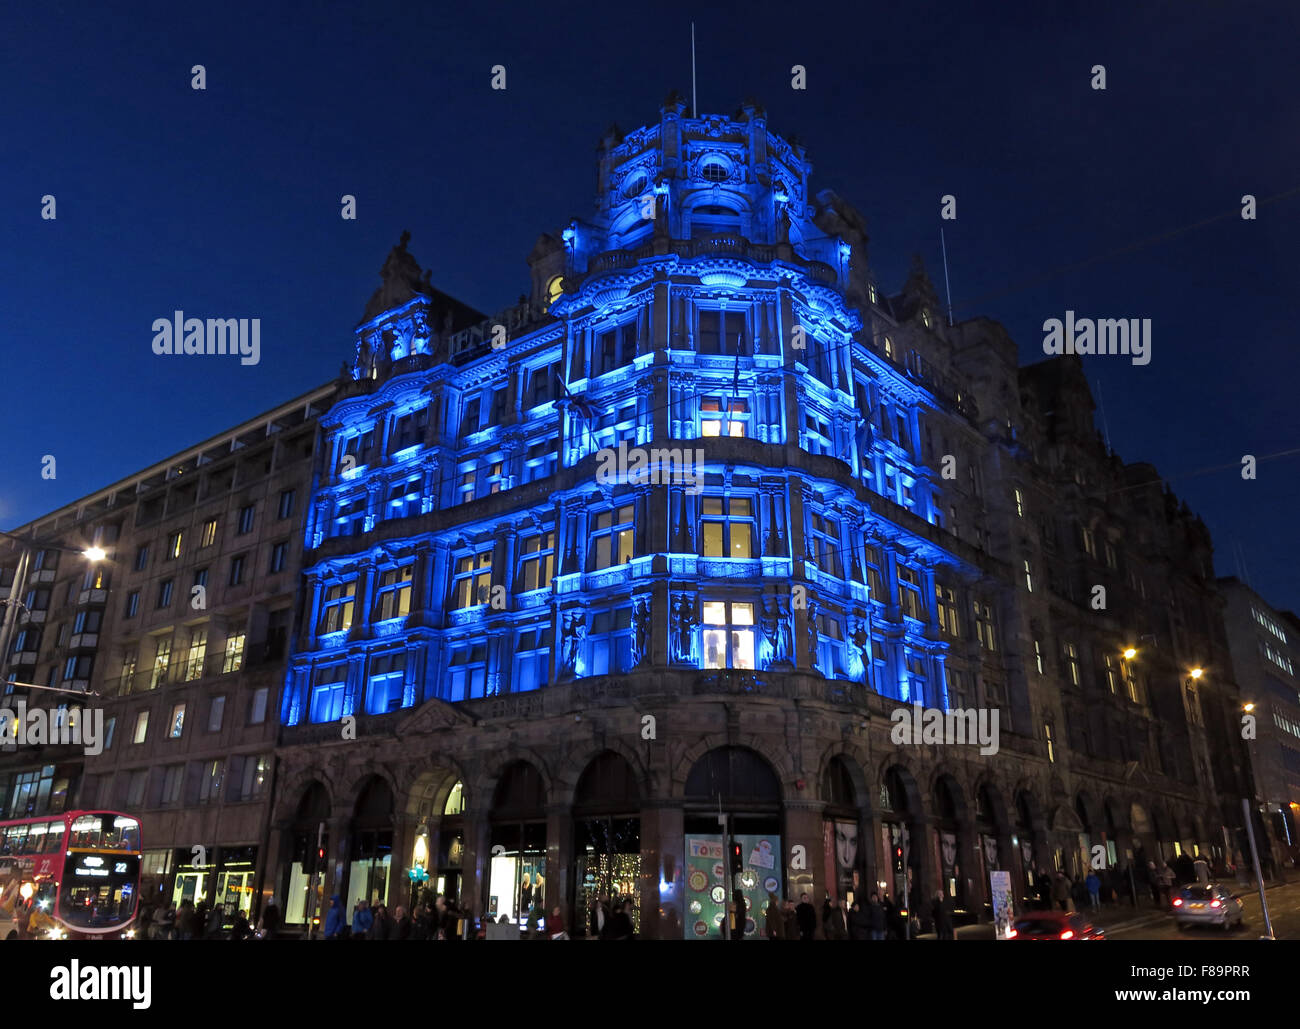 St Andrews day,Jenners Store lit in blue, Edinburgh, Scotland, UK at dusk - Stock Image